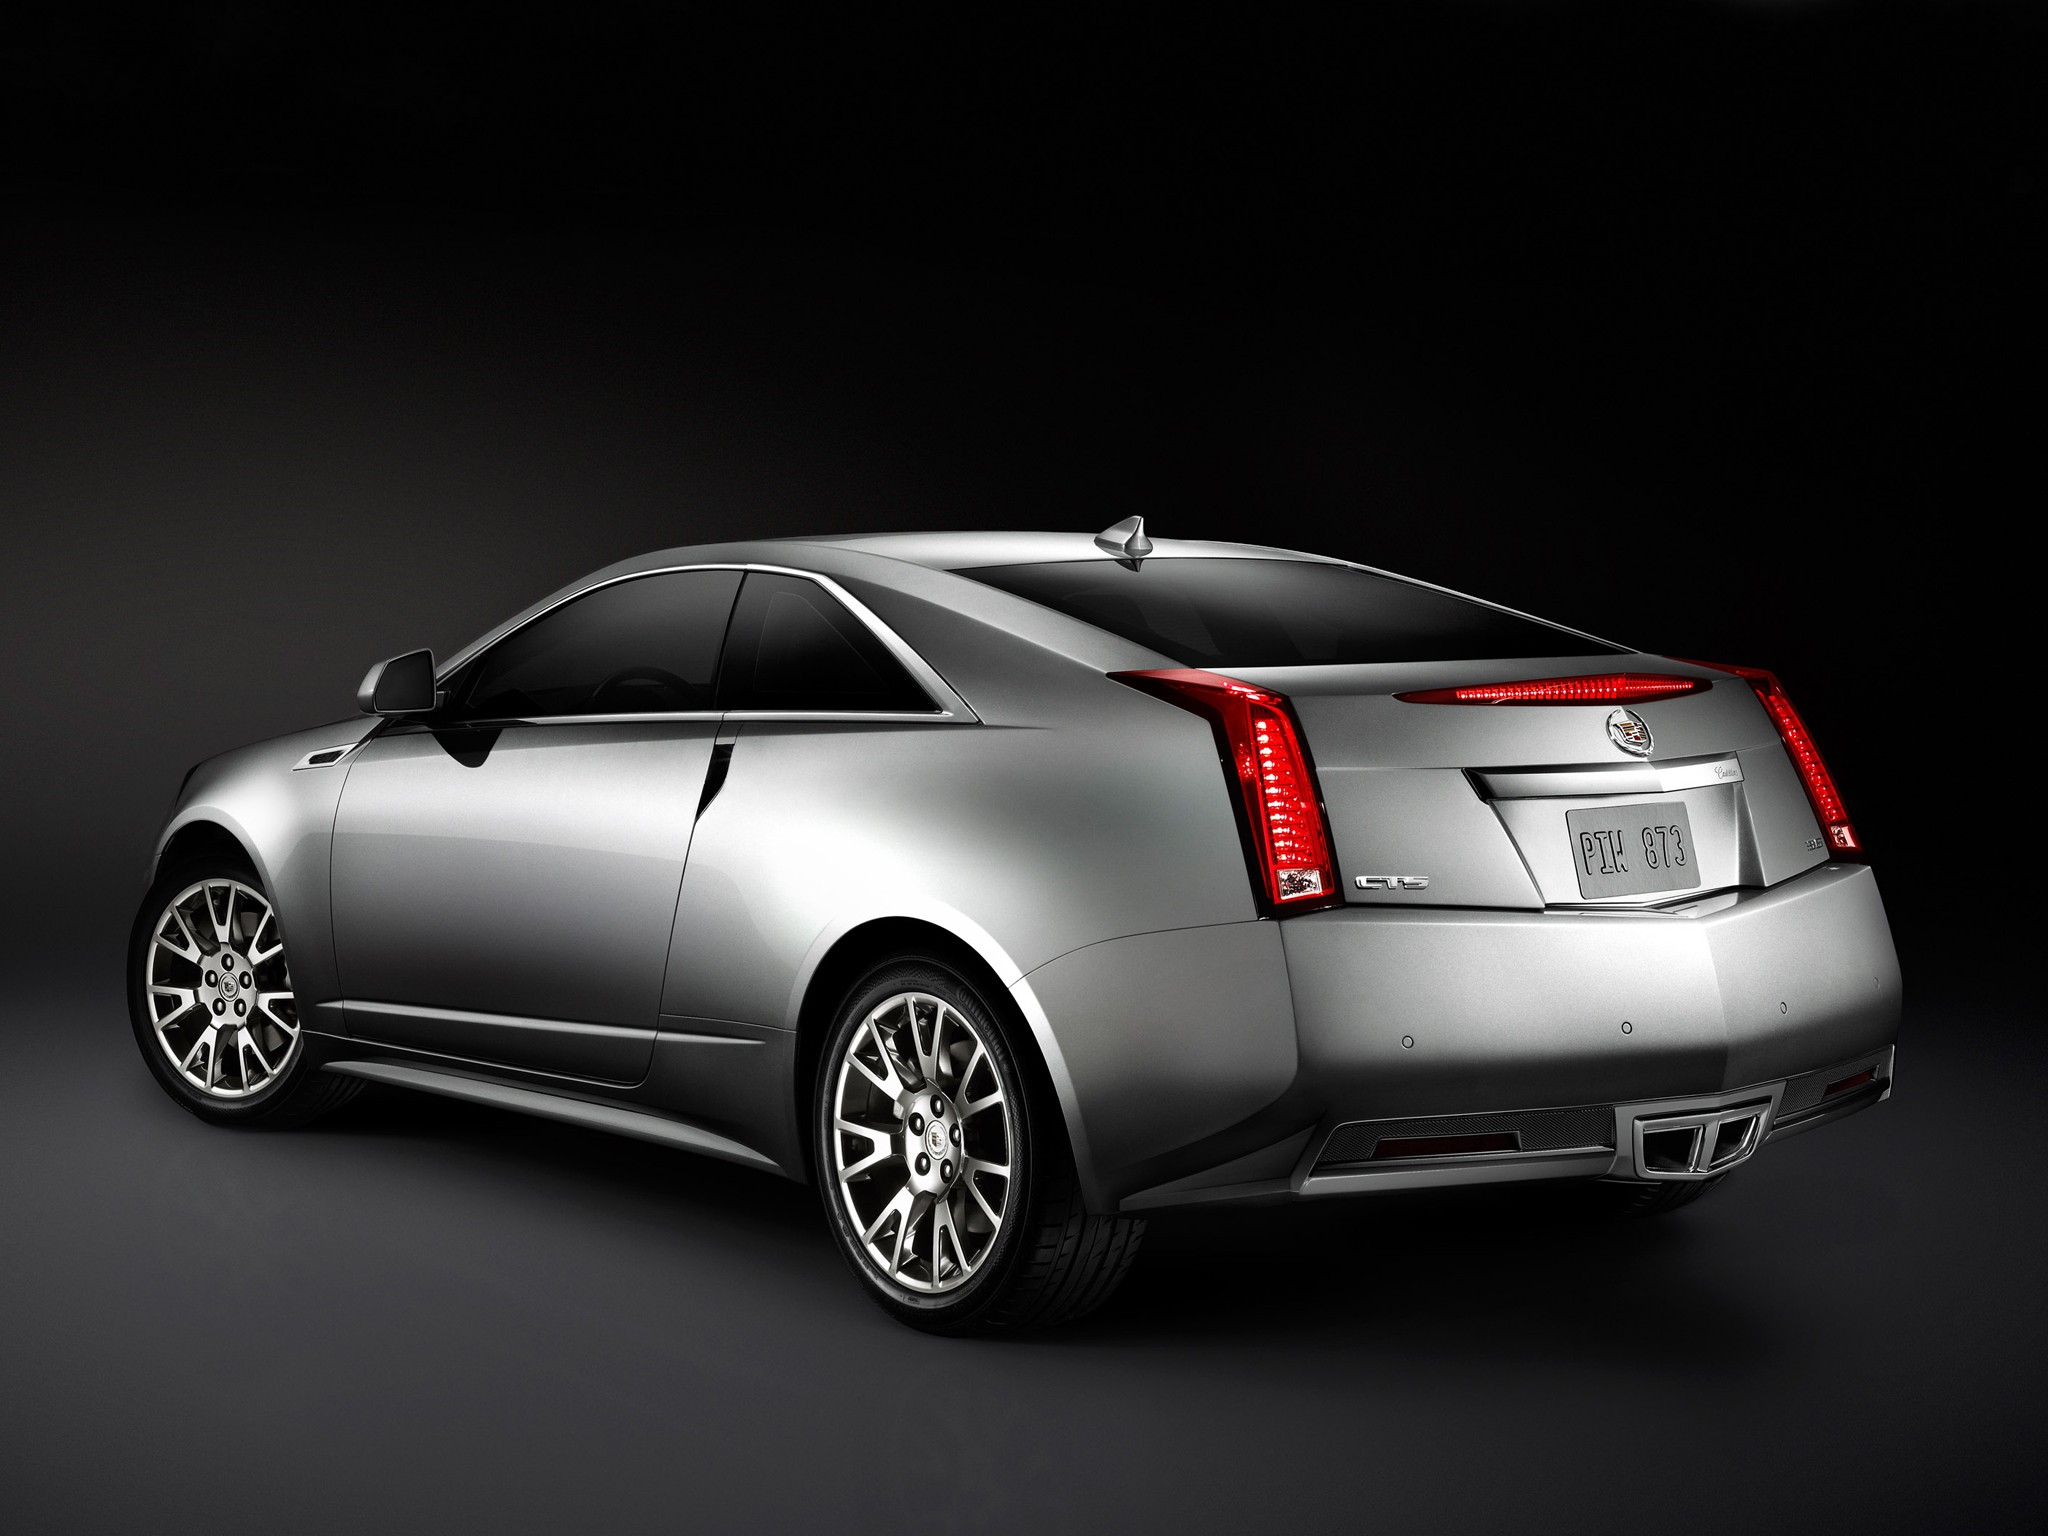 cadillac cts coupe specs photos 2011 2012 2013 2014. Black Bedroom Furniture Sets. Home Design Ideas